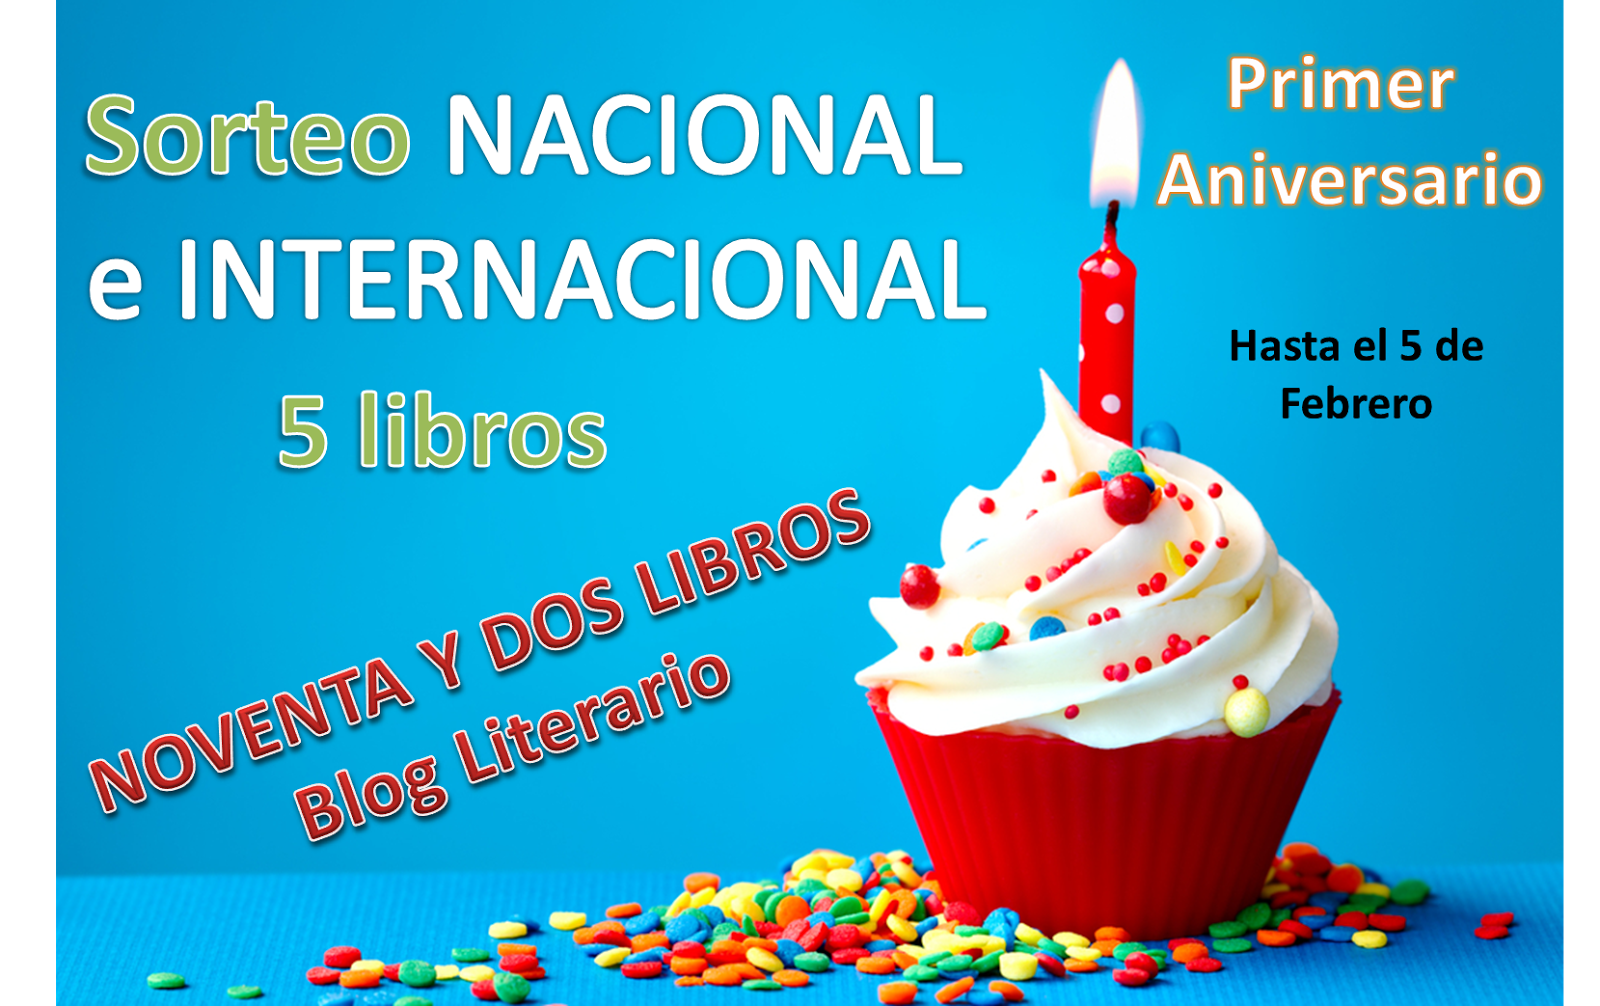 http://noventaydoslibros.blogspot.com.es/2015/01/sorteo-primer-aniversario-premios.html?showComment=1421447138226#c1179993139940440159